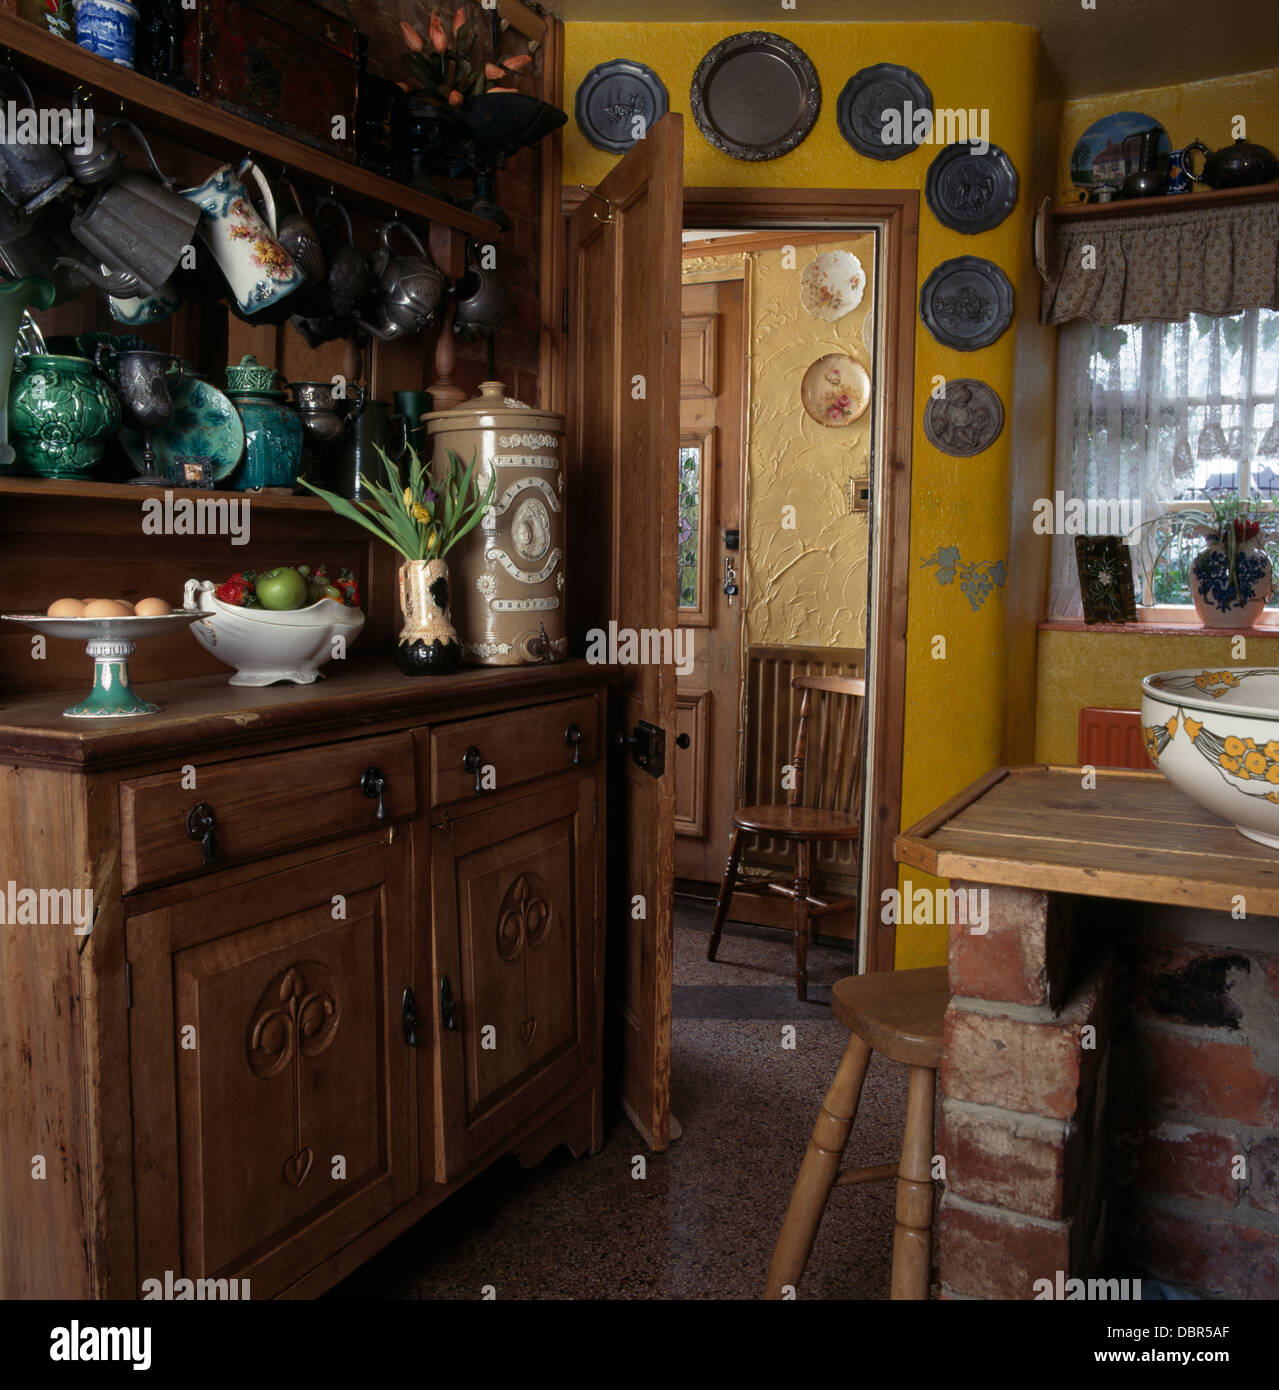 Collection Of Pewter Jugs On Old Pine Dresser In Retro Kitchen With